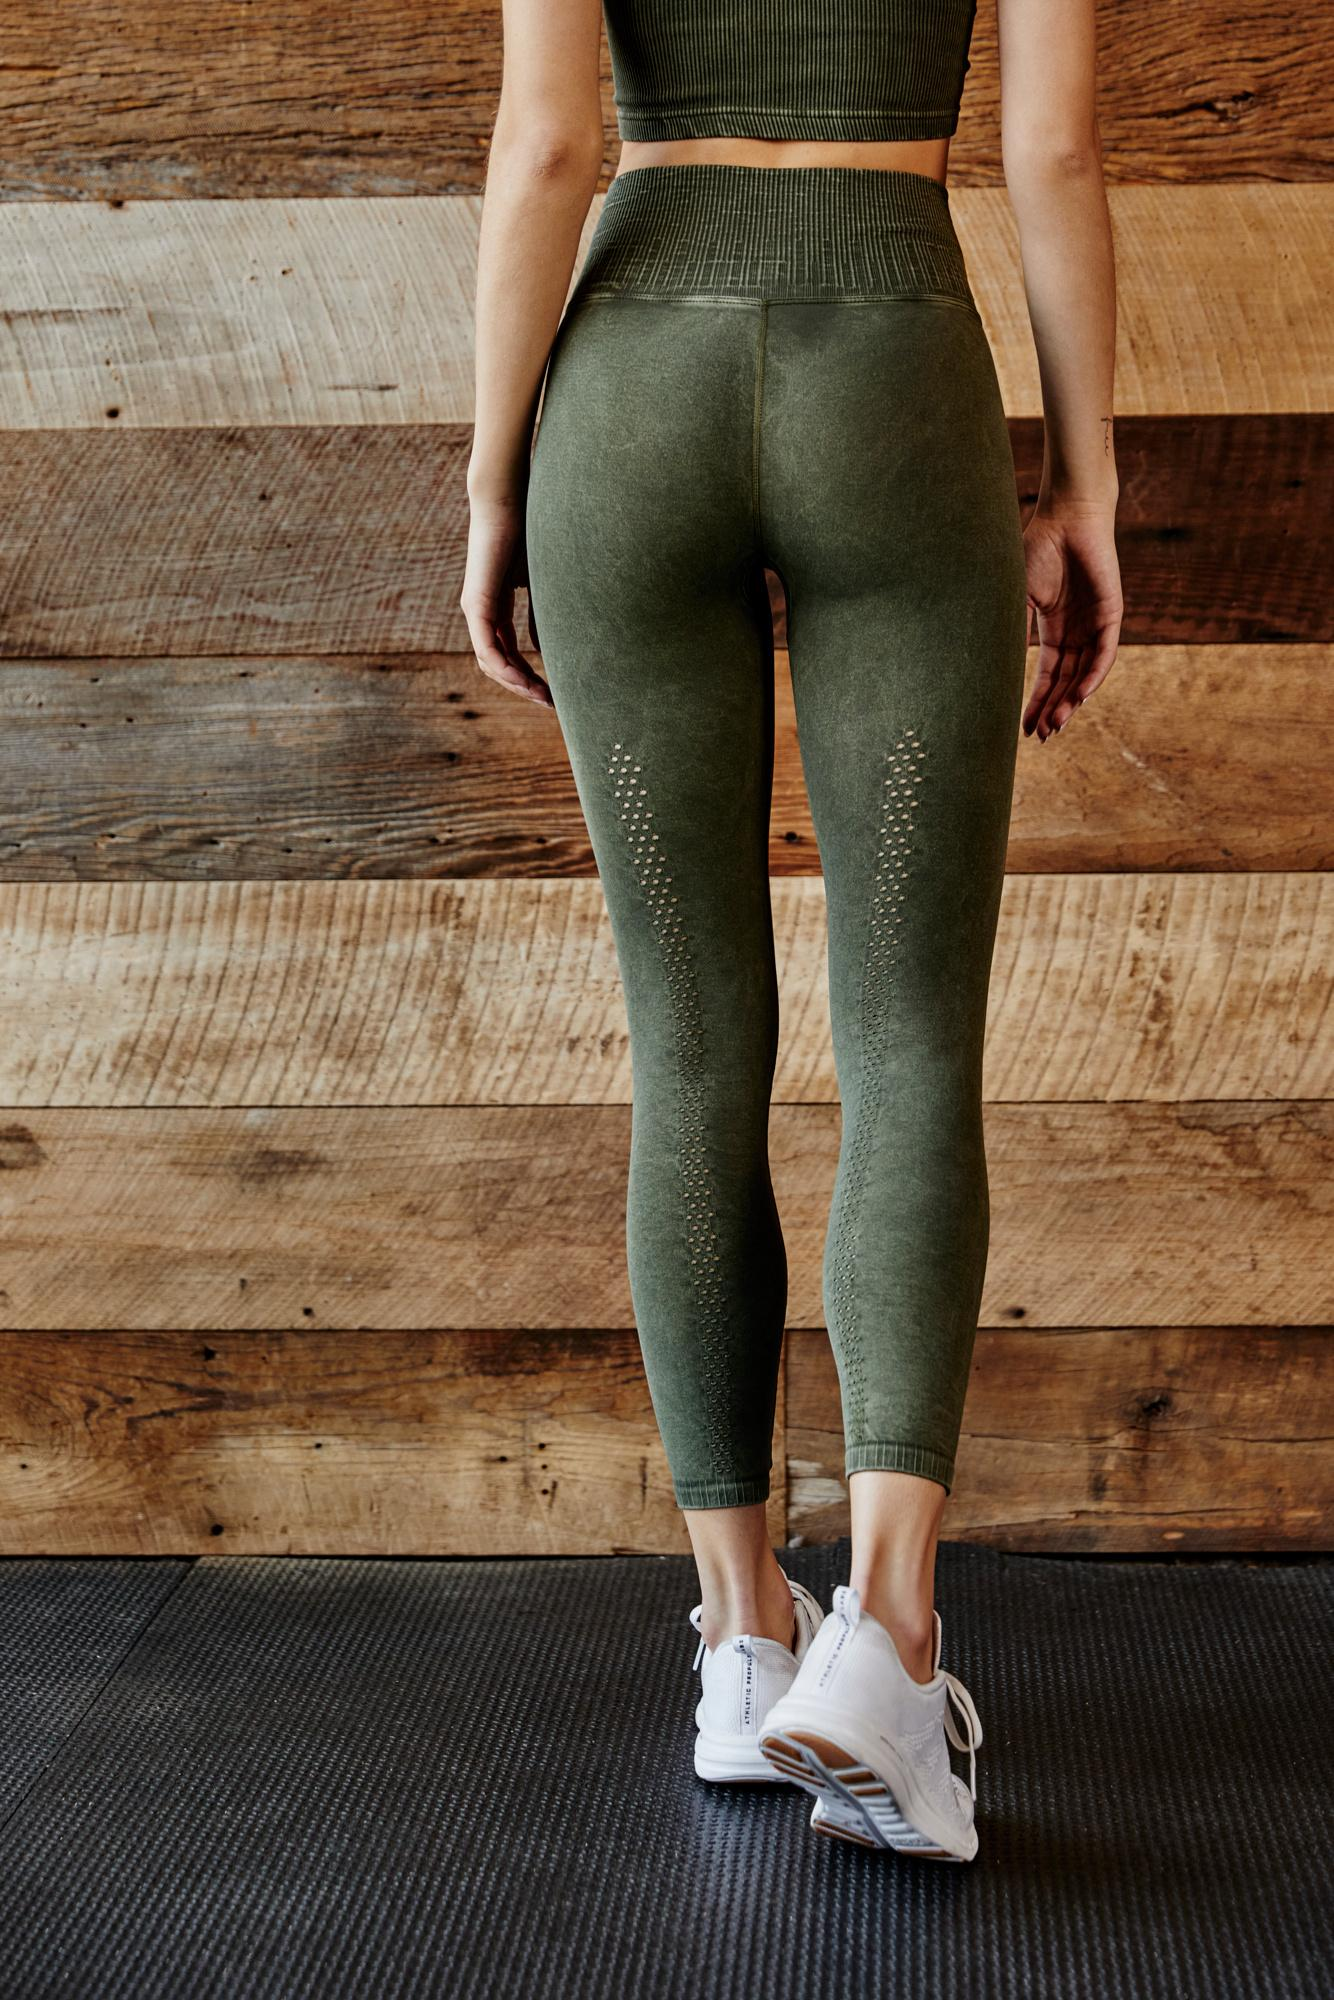 eb111cc9ed086 Free People High-rise 7/8 Length Shanti Legging By Fp Movement in ...